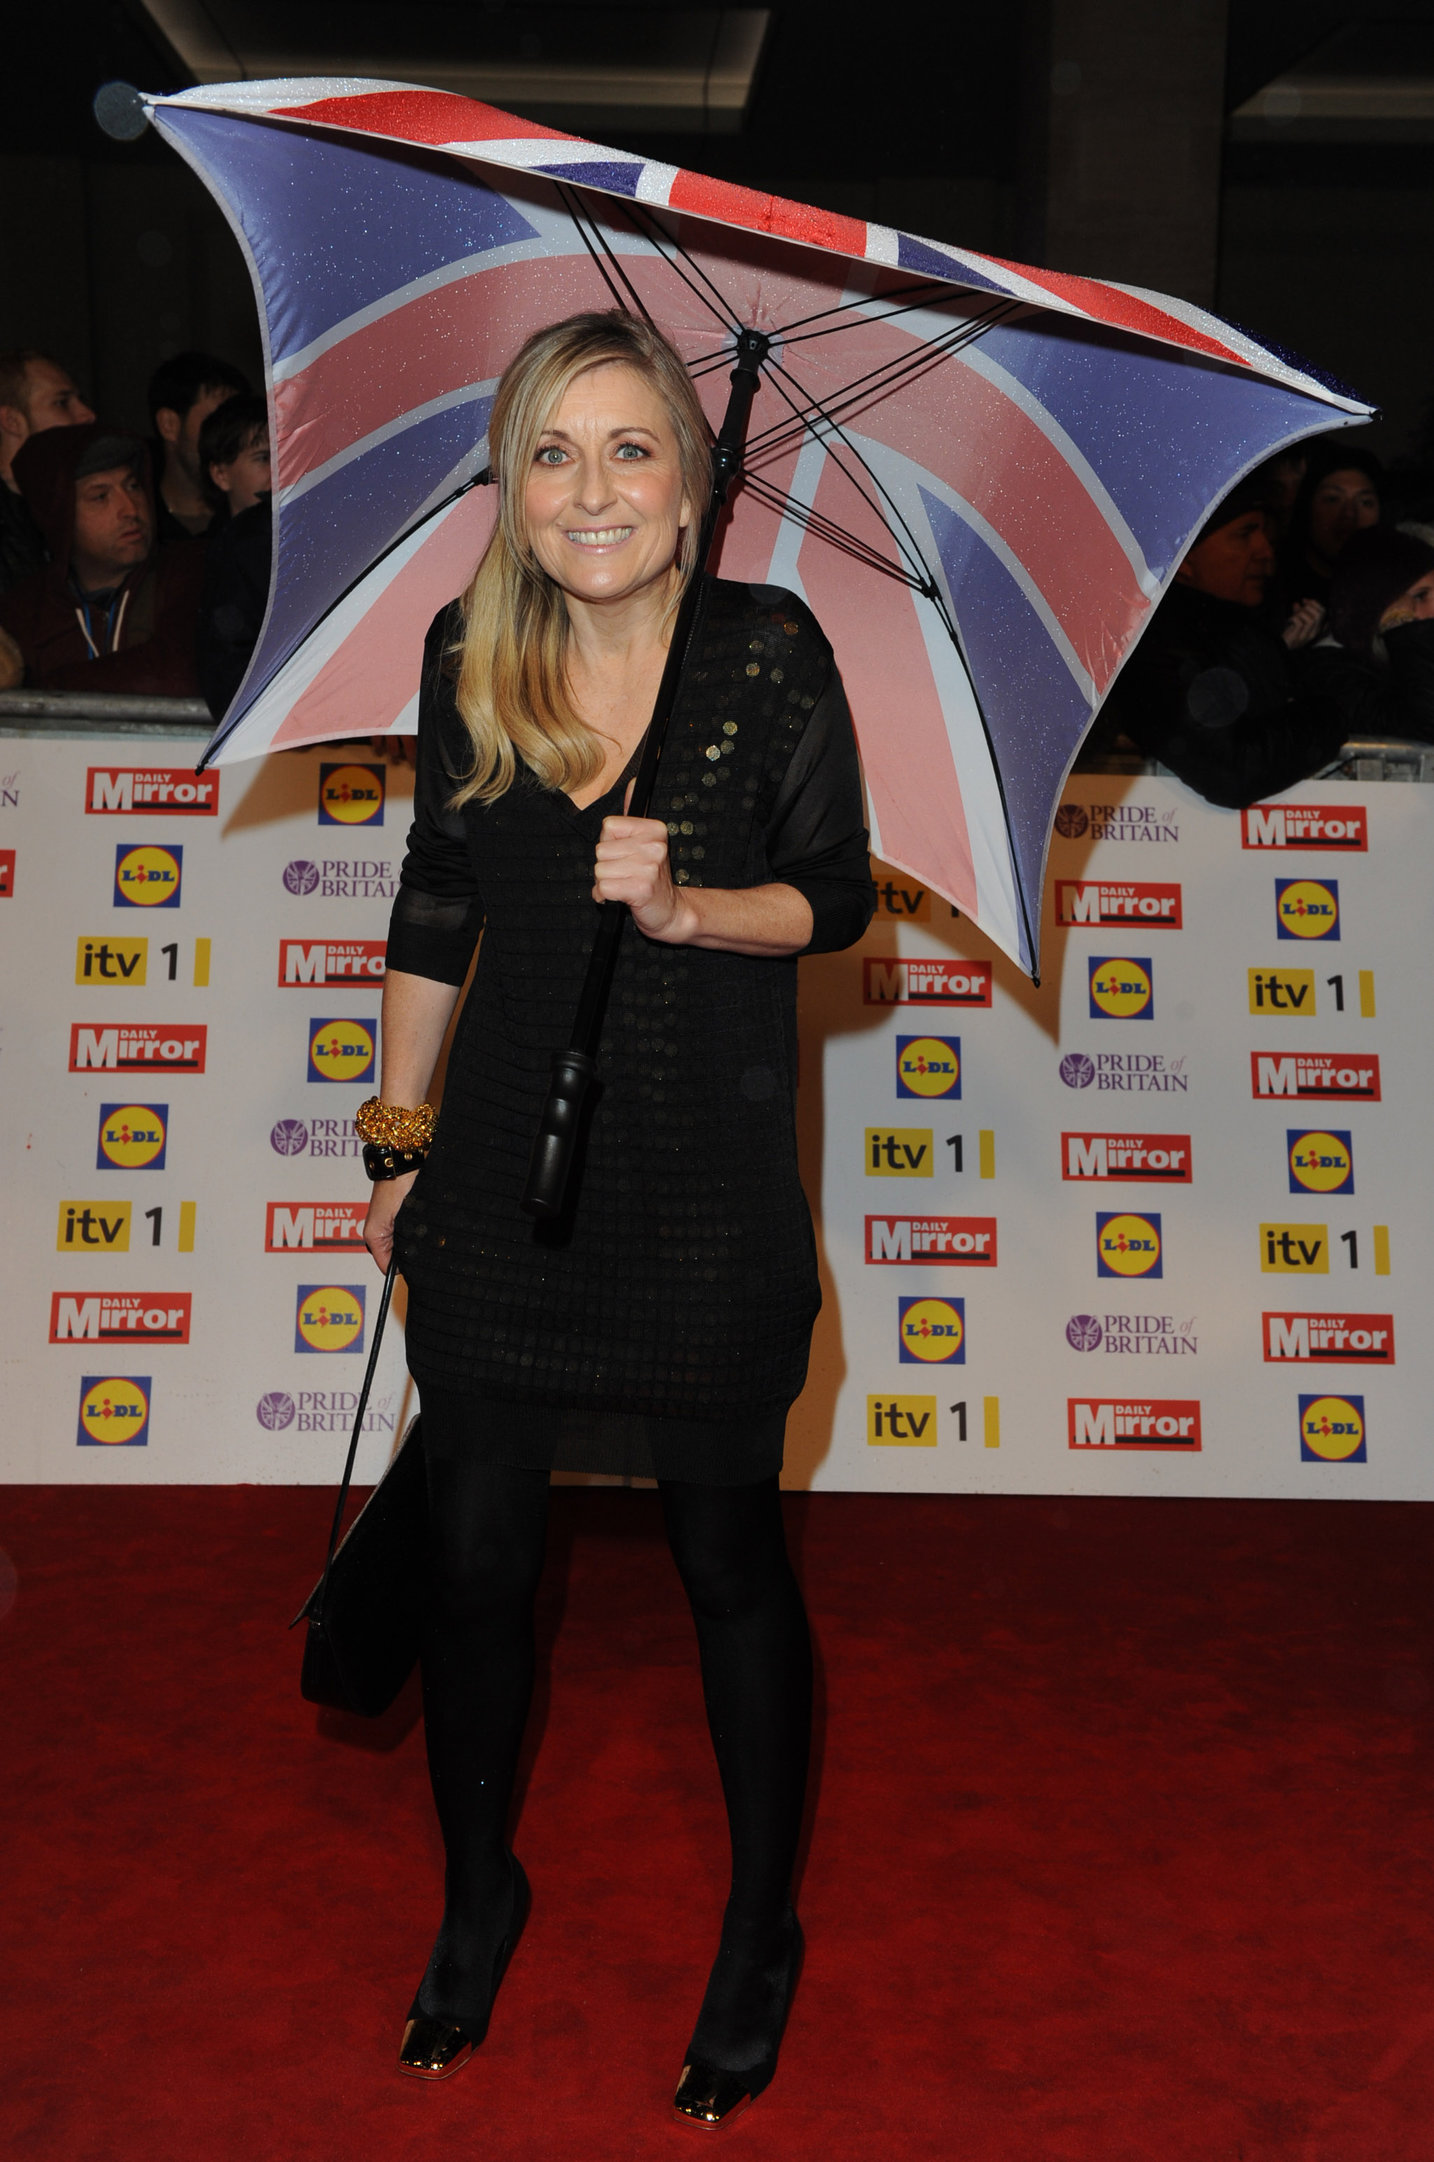 Fiona Phillips Pride Of Britain Awards, London - October 29, 2012